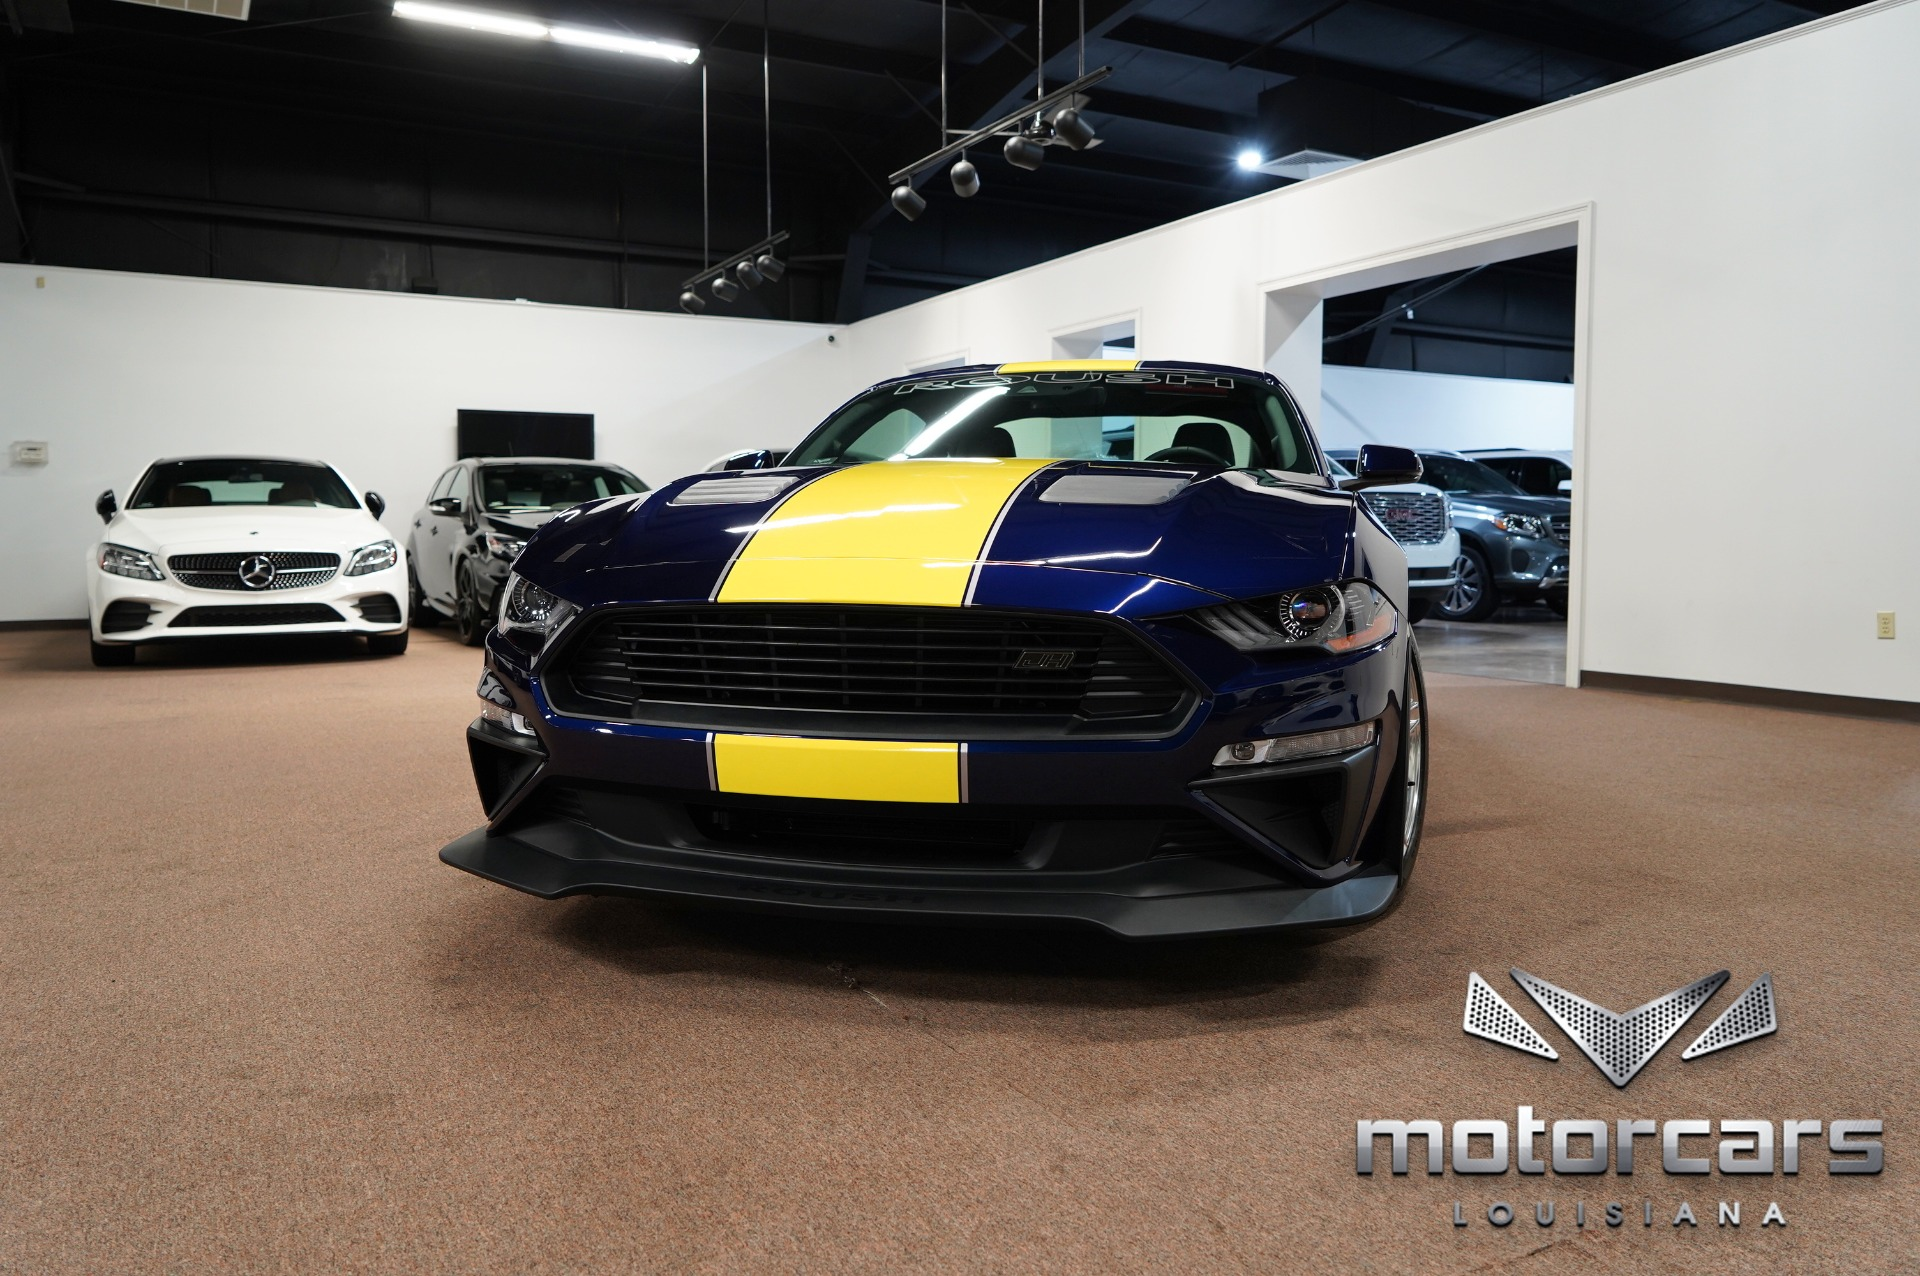 2018 Ford Mustang ROUSH Jackhammer Blue Angels Edition 1of1